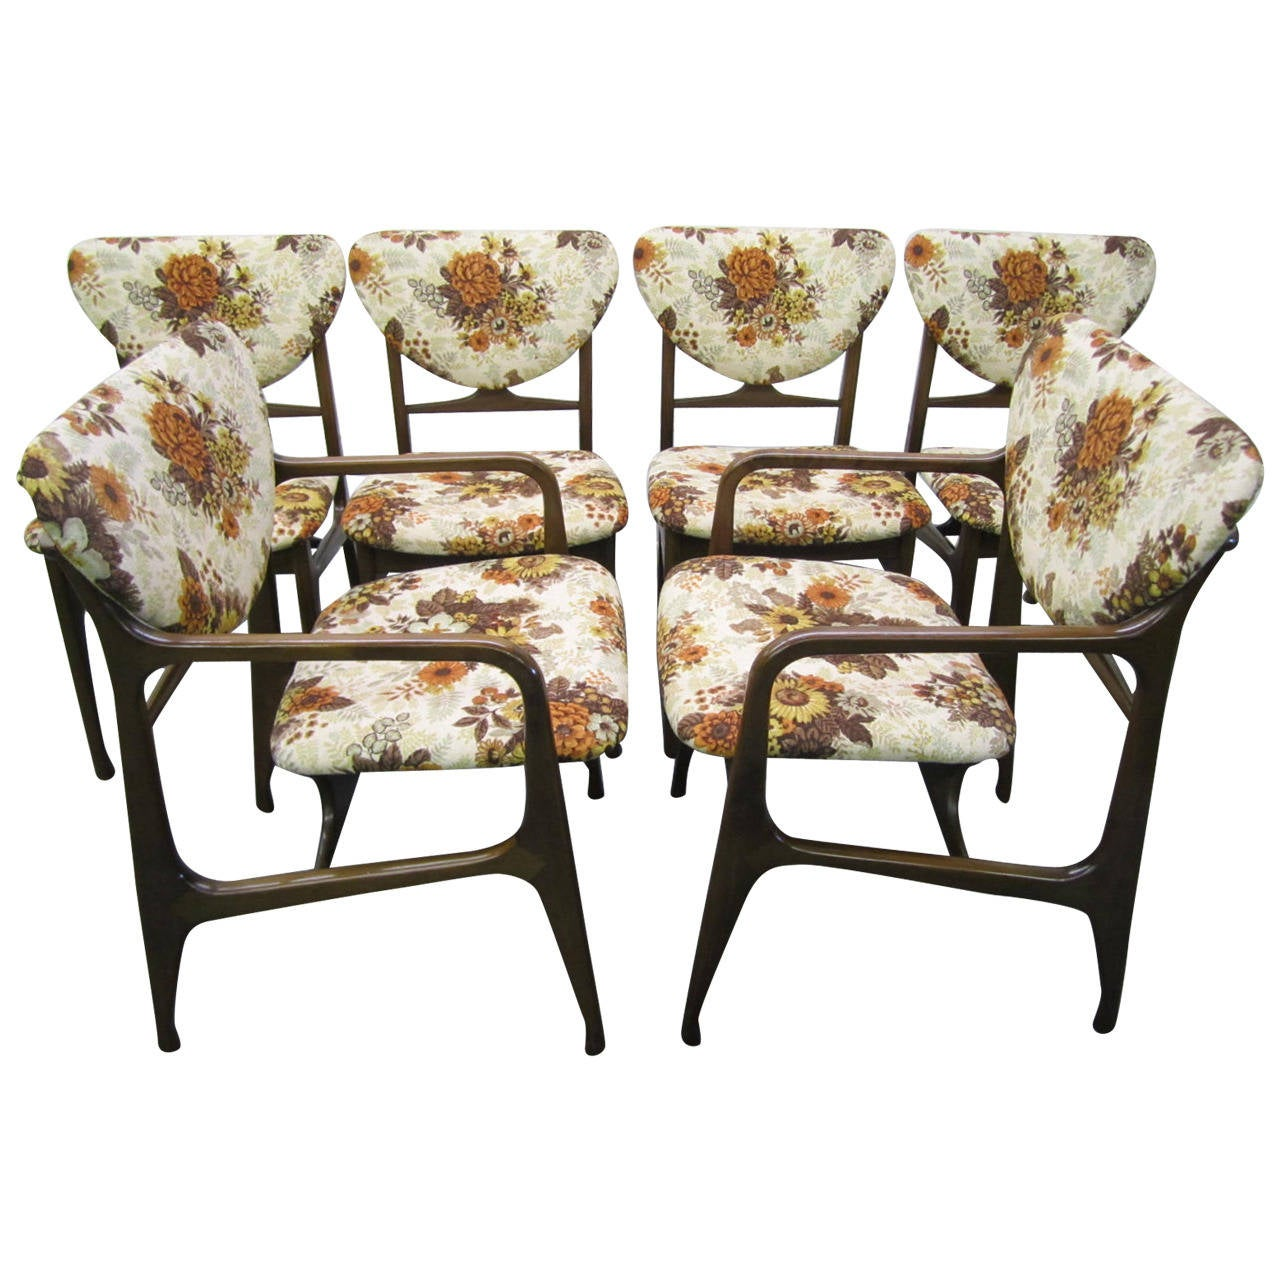 Excellent Set Of Six Dining Chairs Mid Century Modern For Sale